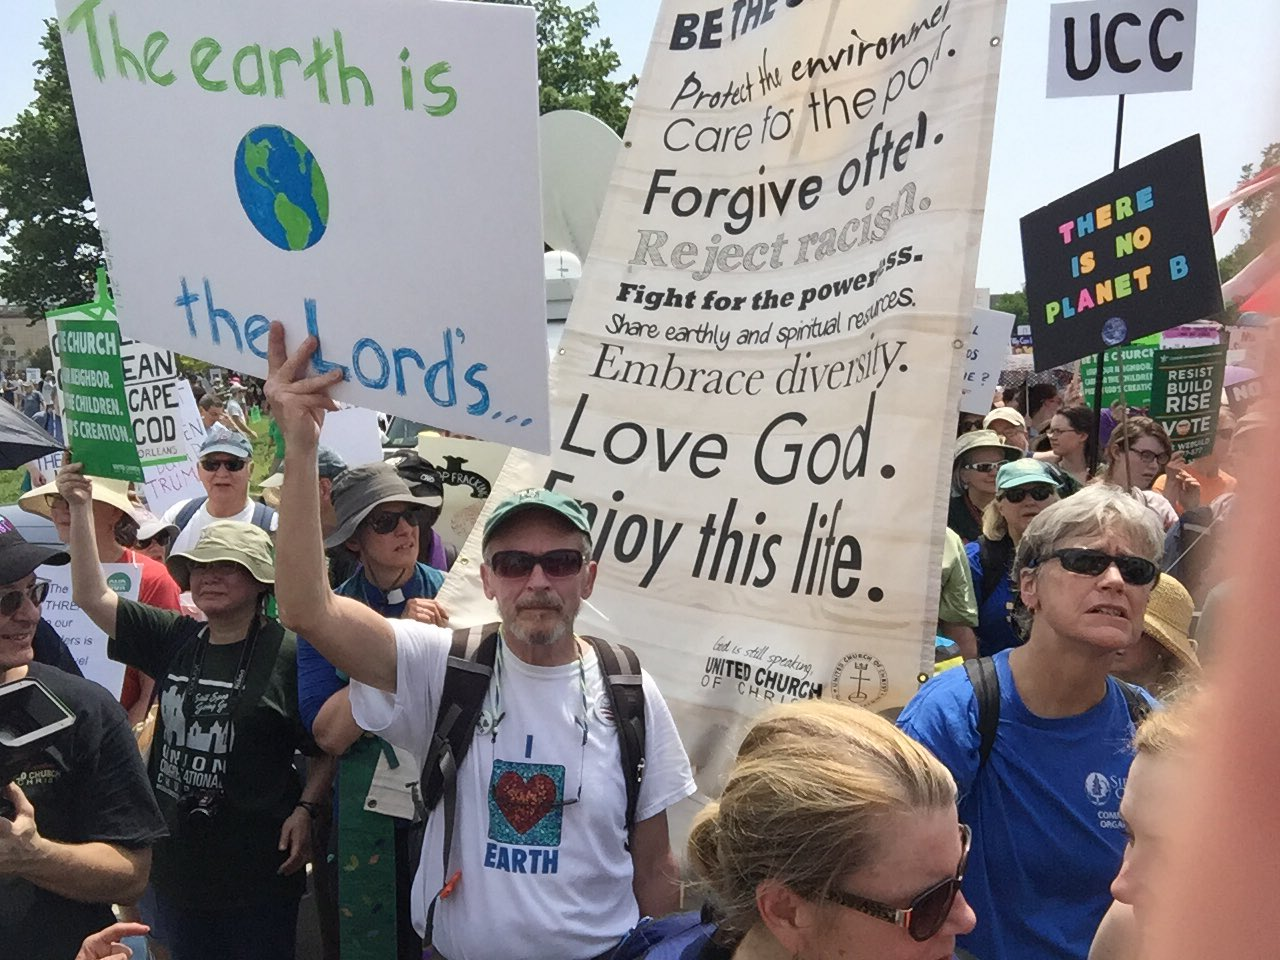 UCC on the move! Marching for climate justice. #climatemarch https://t.co/iJ6ZE7ZRUd